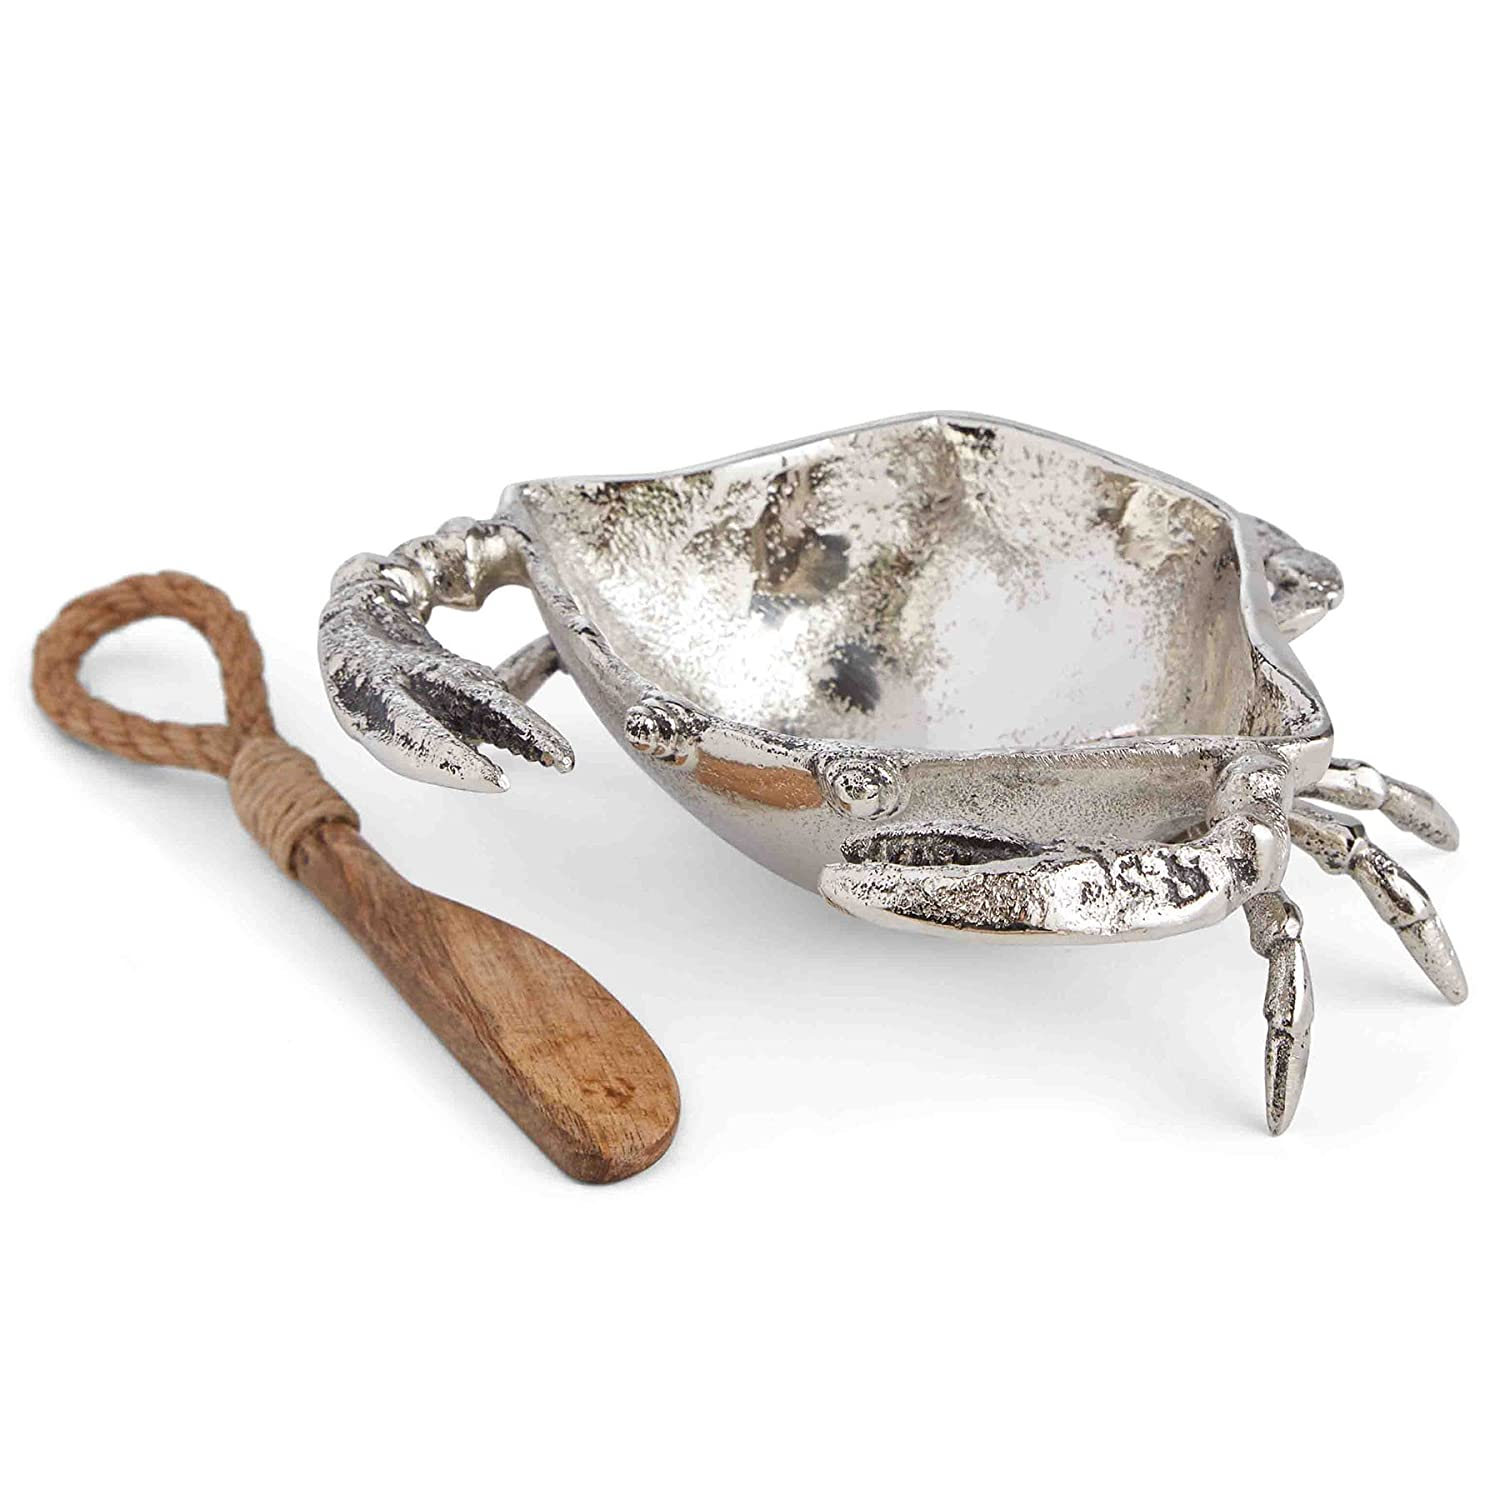 Silver Metal Crab Dip Cup and Spreader Set